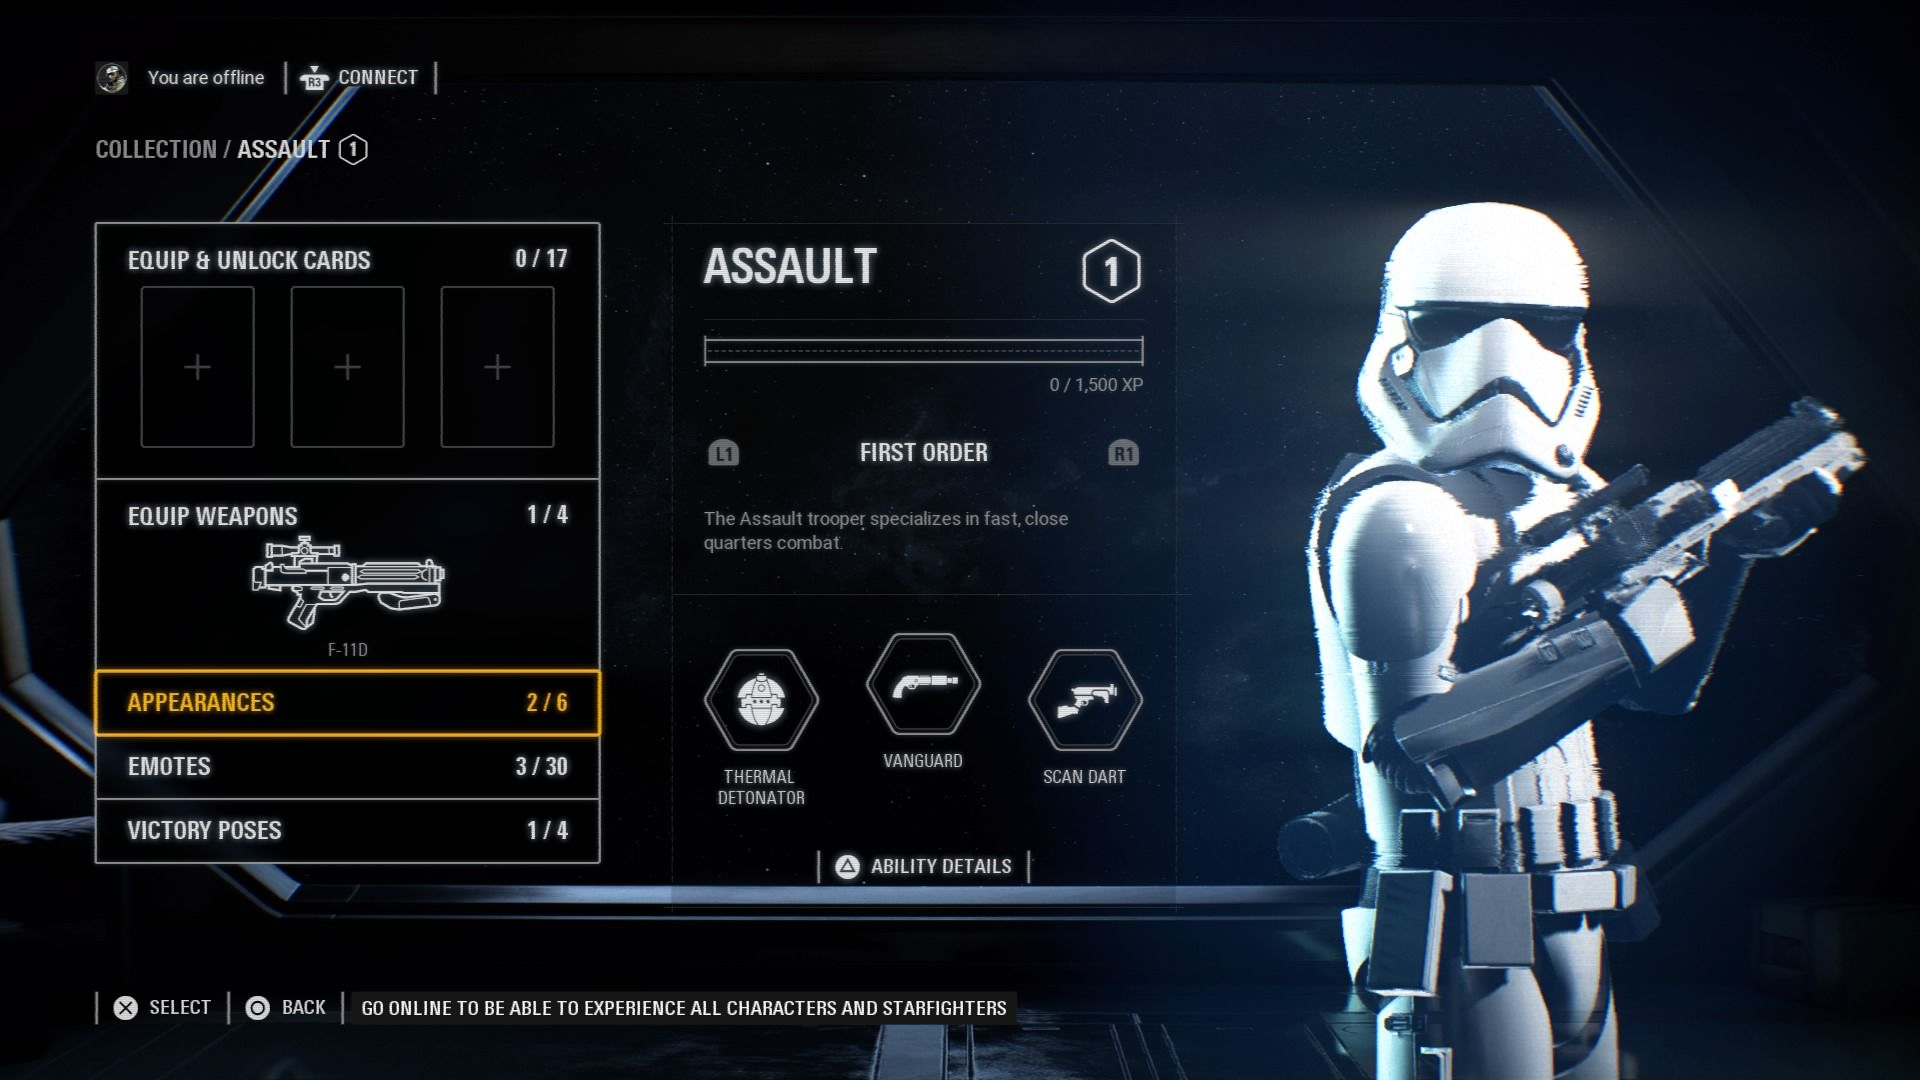 Star Wars Battlefront 2 Skins List Appearances In April Update Beyond